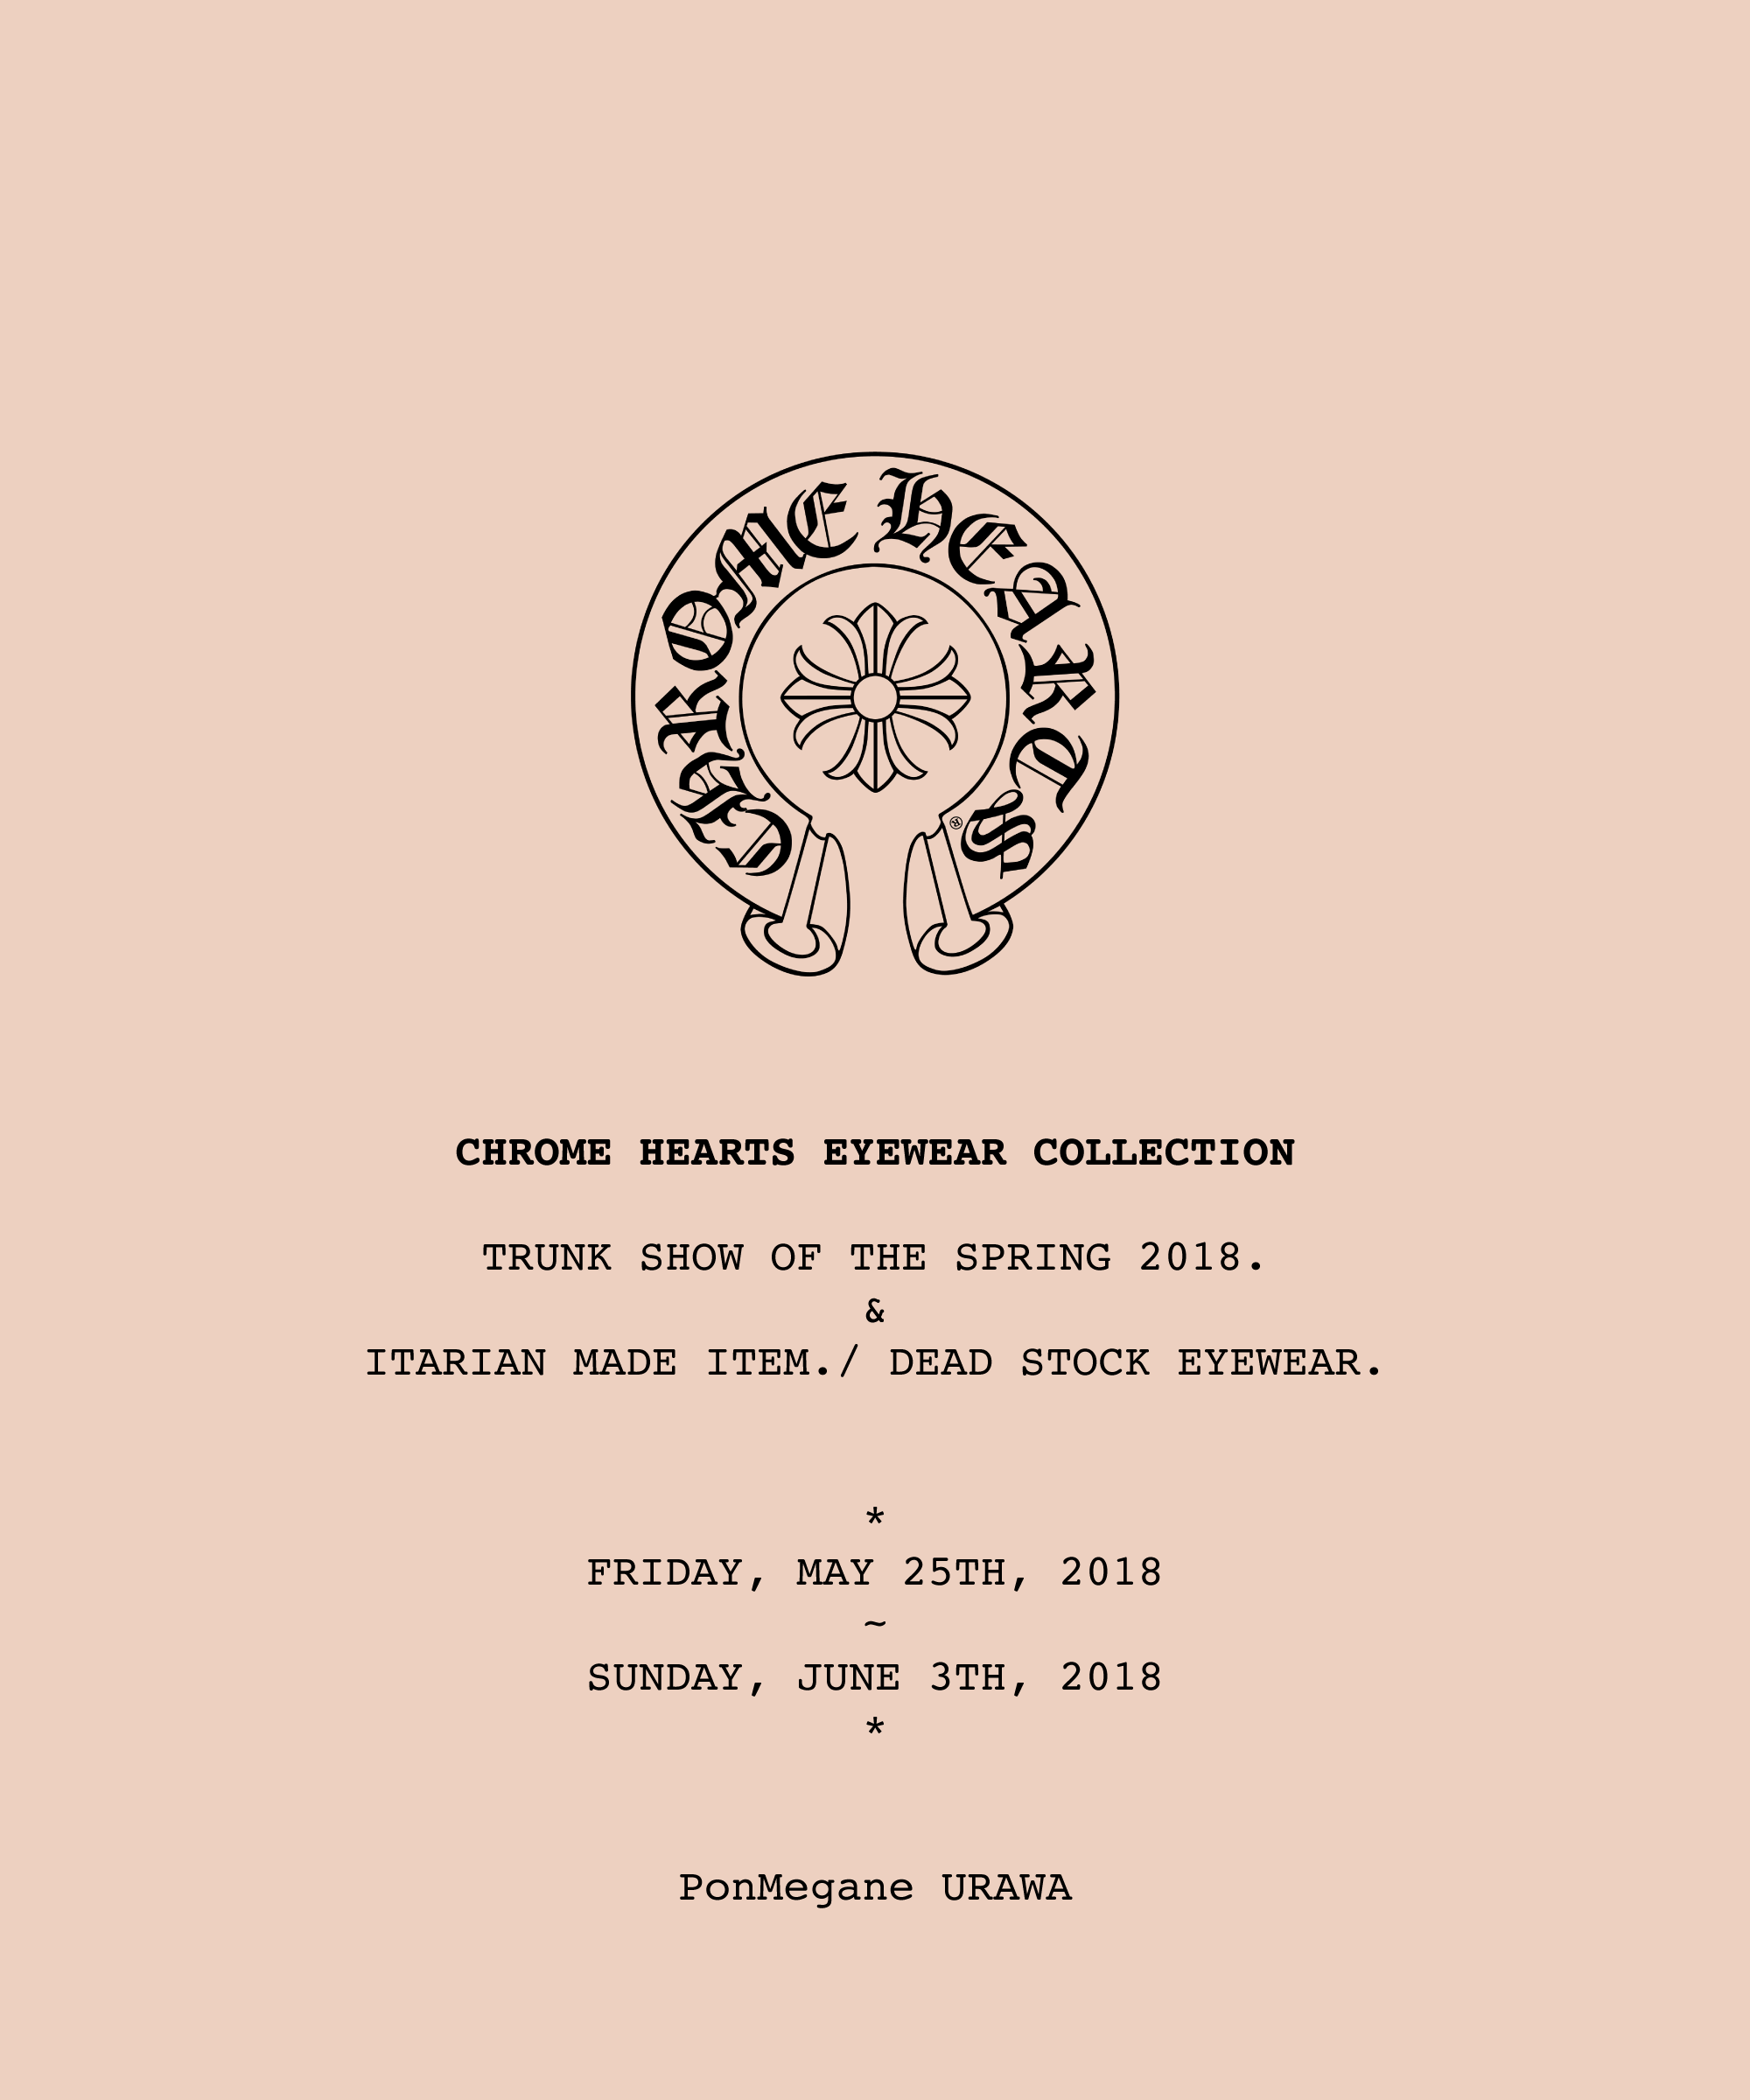 chrome-hearts 2018trunkshow